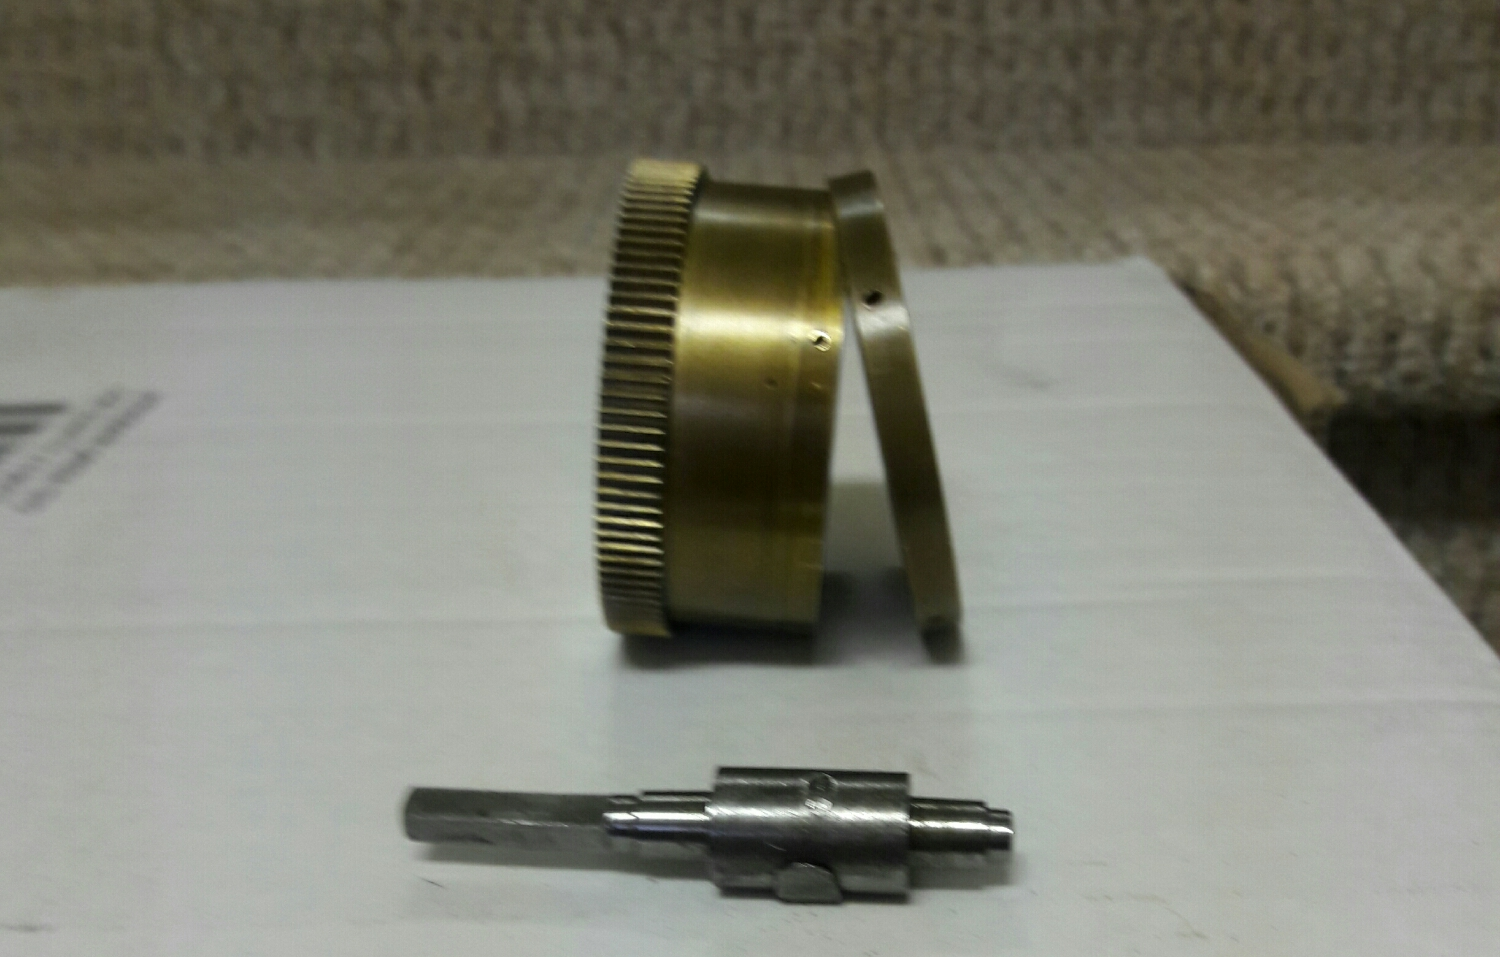 most mainspring barrels have a snap on lid that is flush with the non gear end of the barrel. Here we see a cap that is snapped onto the barrel and secured with 4 tiny screws .